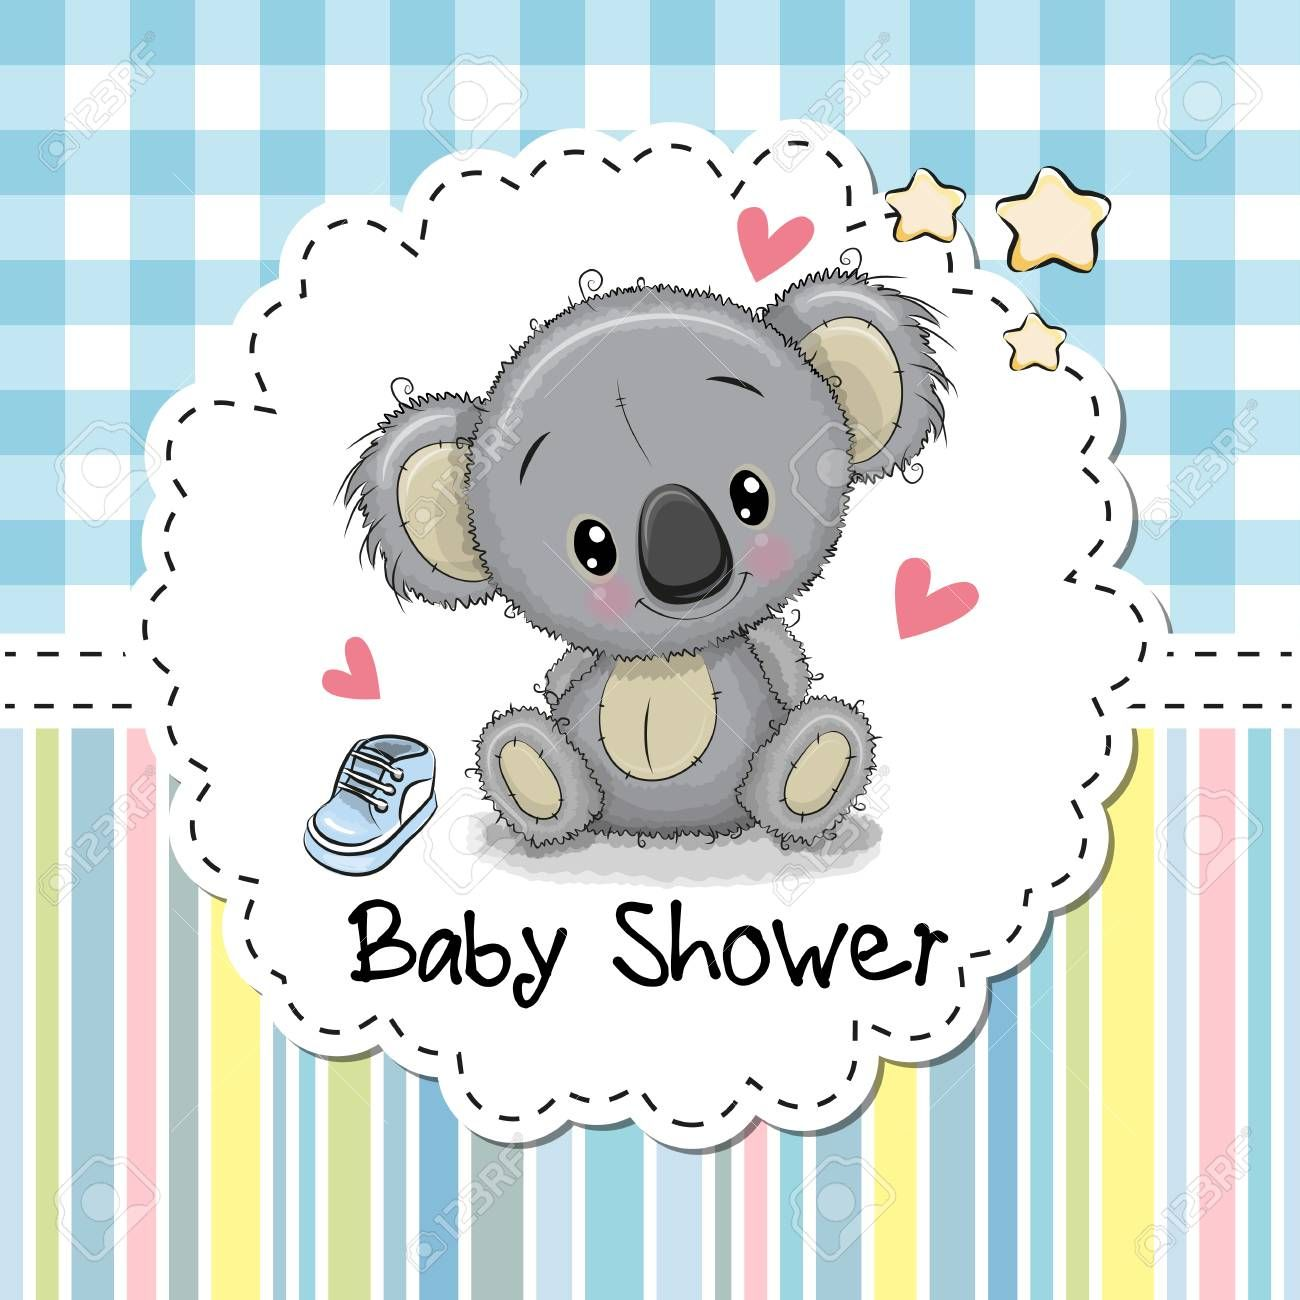 Baby Shower Greeting Card With Cute Cartoon Koala Boy Ad Greeting Card Baby Shower Koala Baby Shower Greetings Baby Shower Greeting Cards Koala